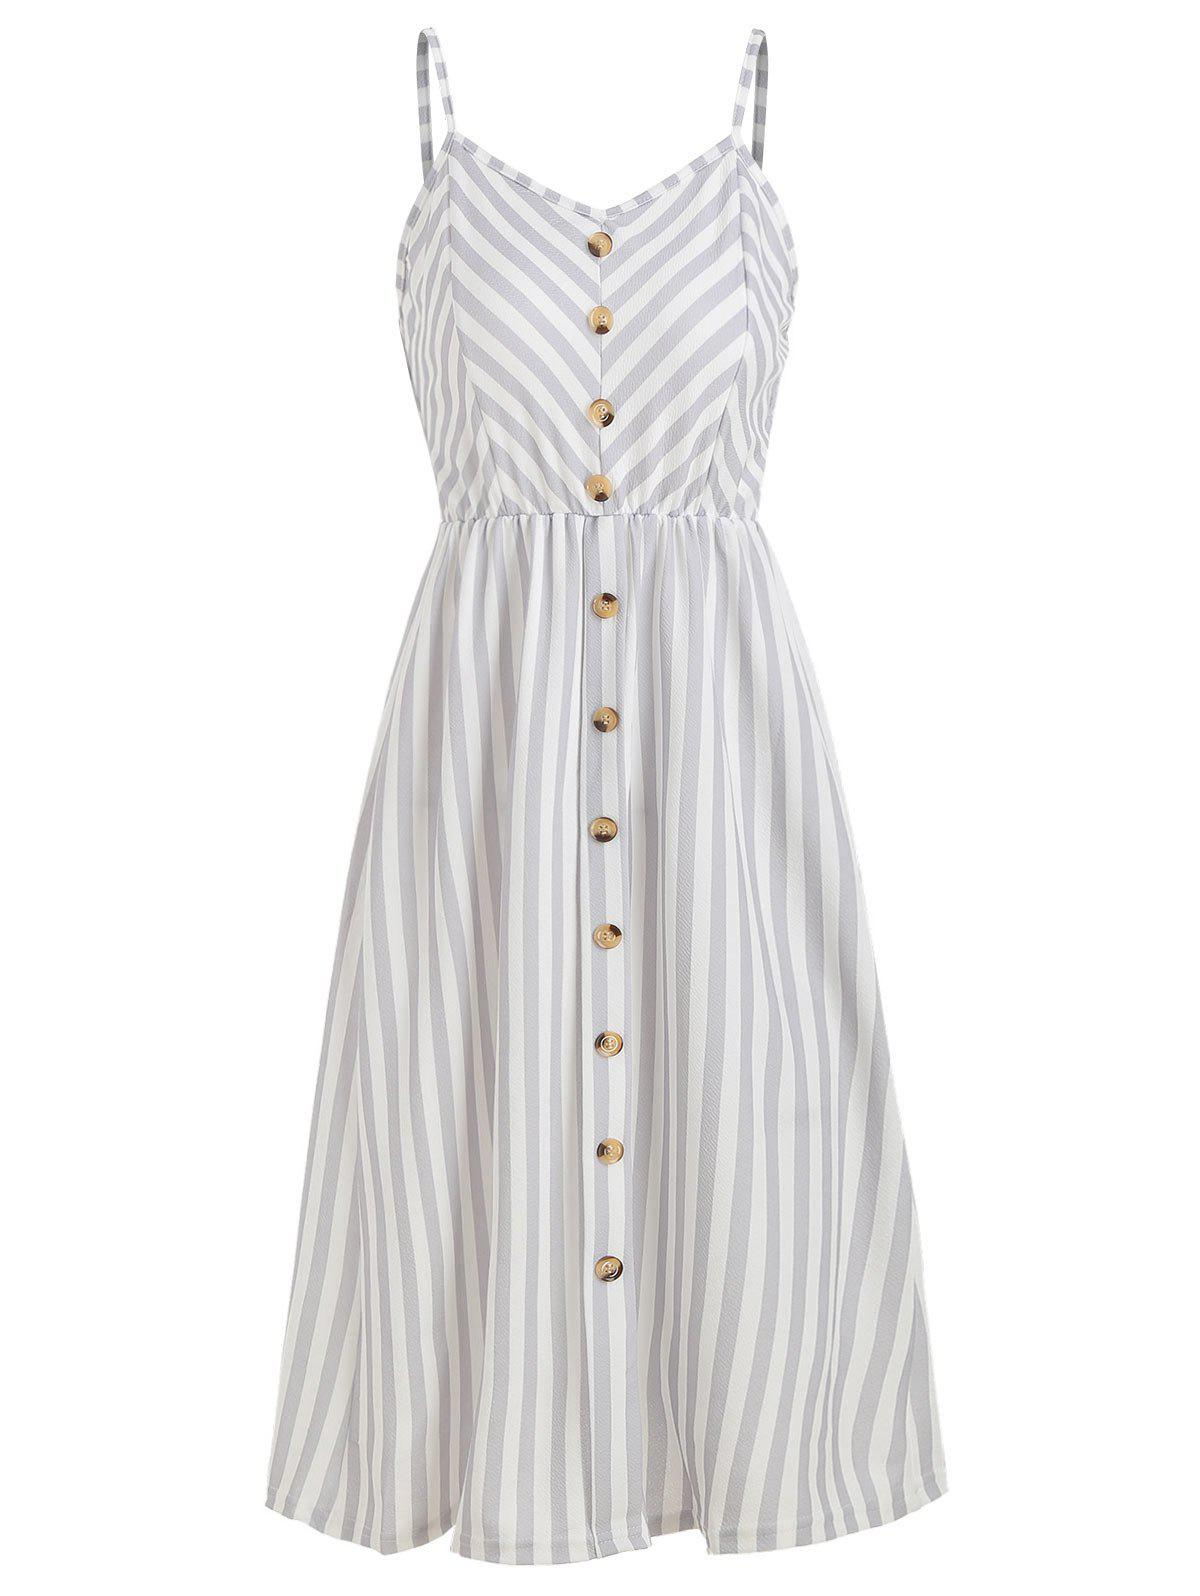 Button High Waist Striped Dress - LIGHT GRAY 2XL